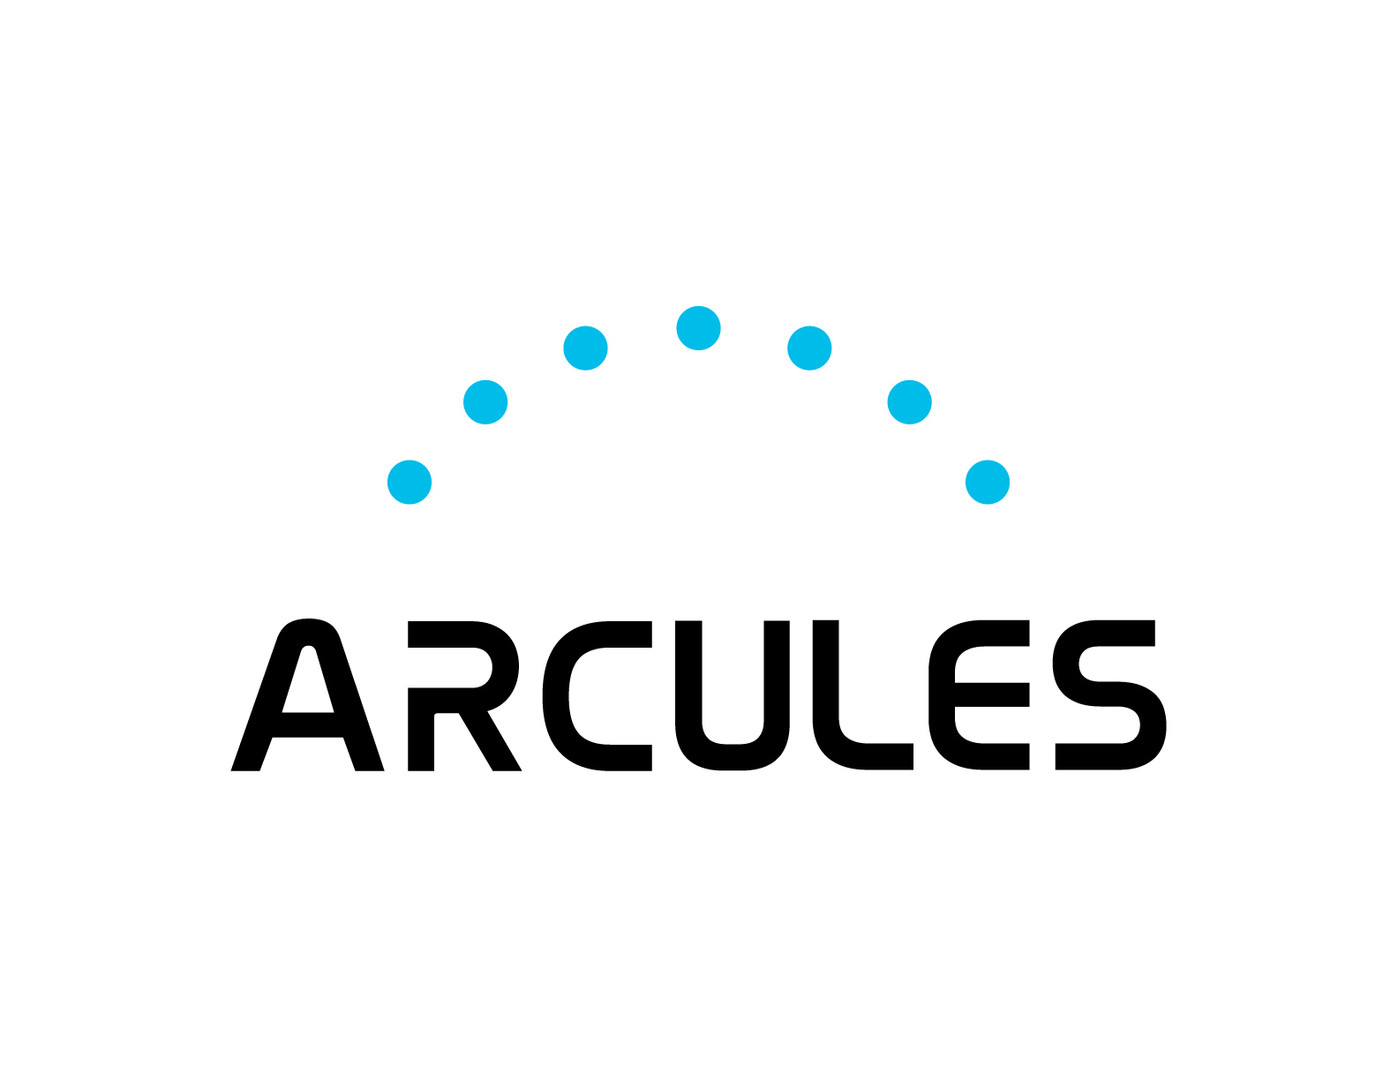 Arcules_color_solid_on_white_cmyk.jpg